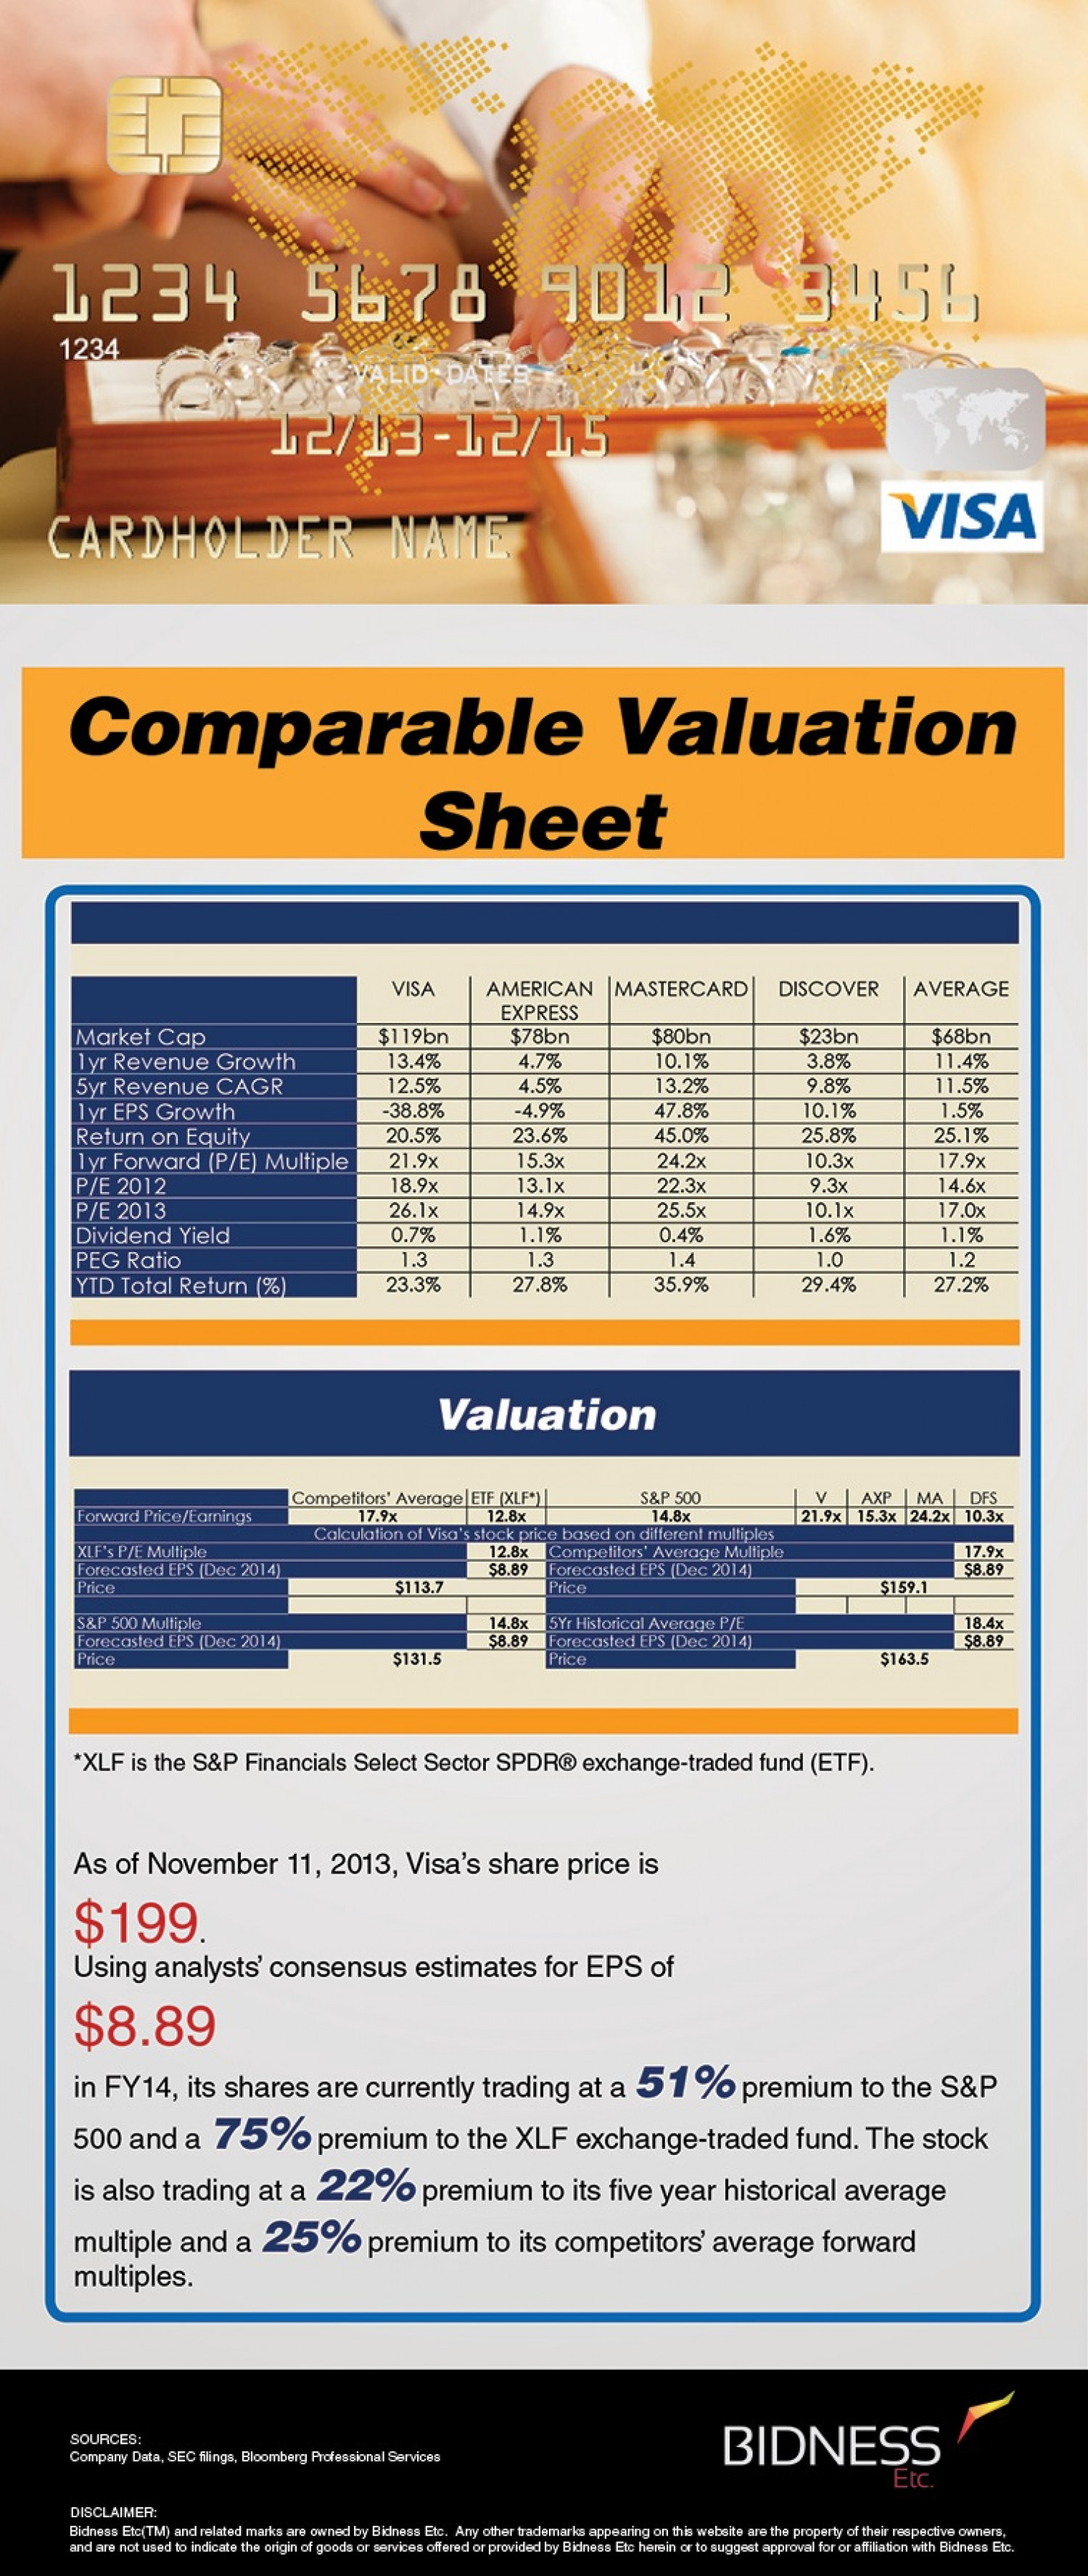 Visa (V) Valuation Sheet Infographic